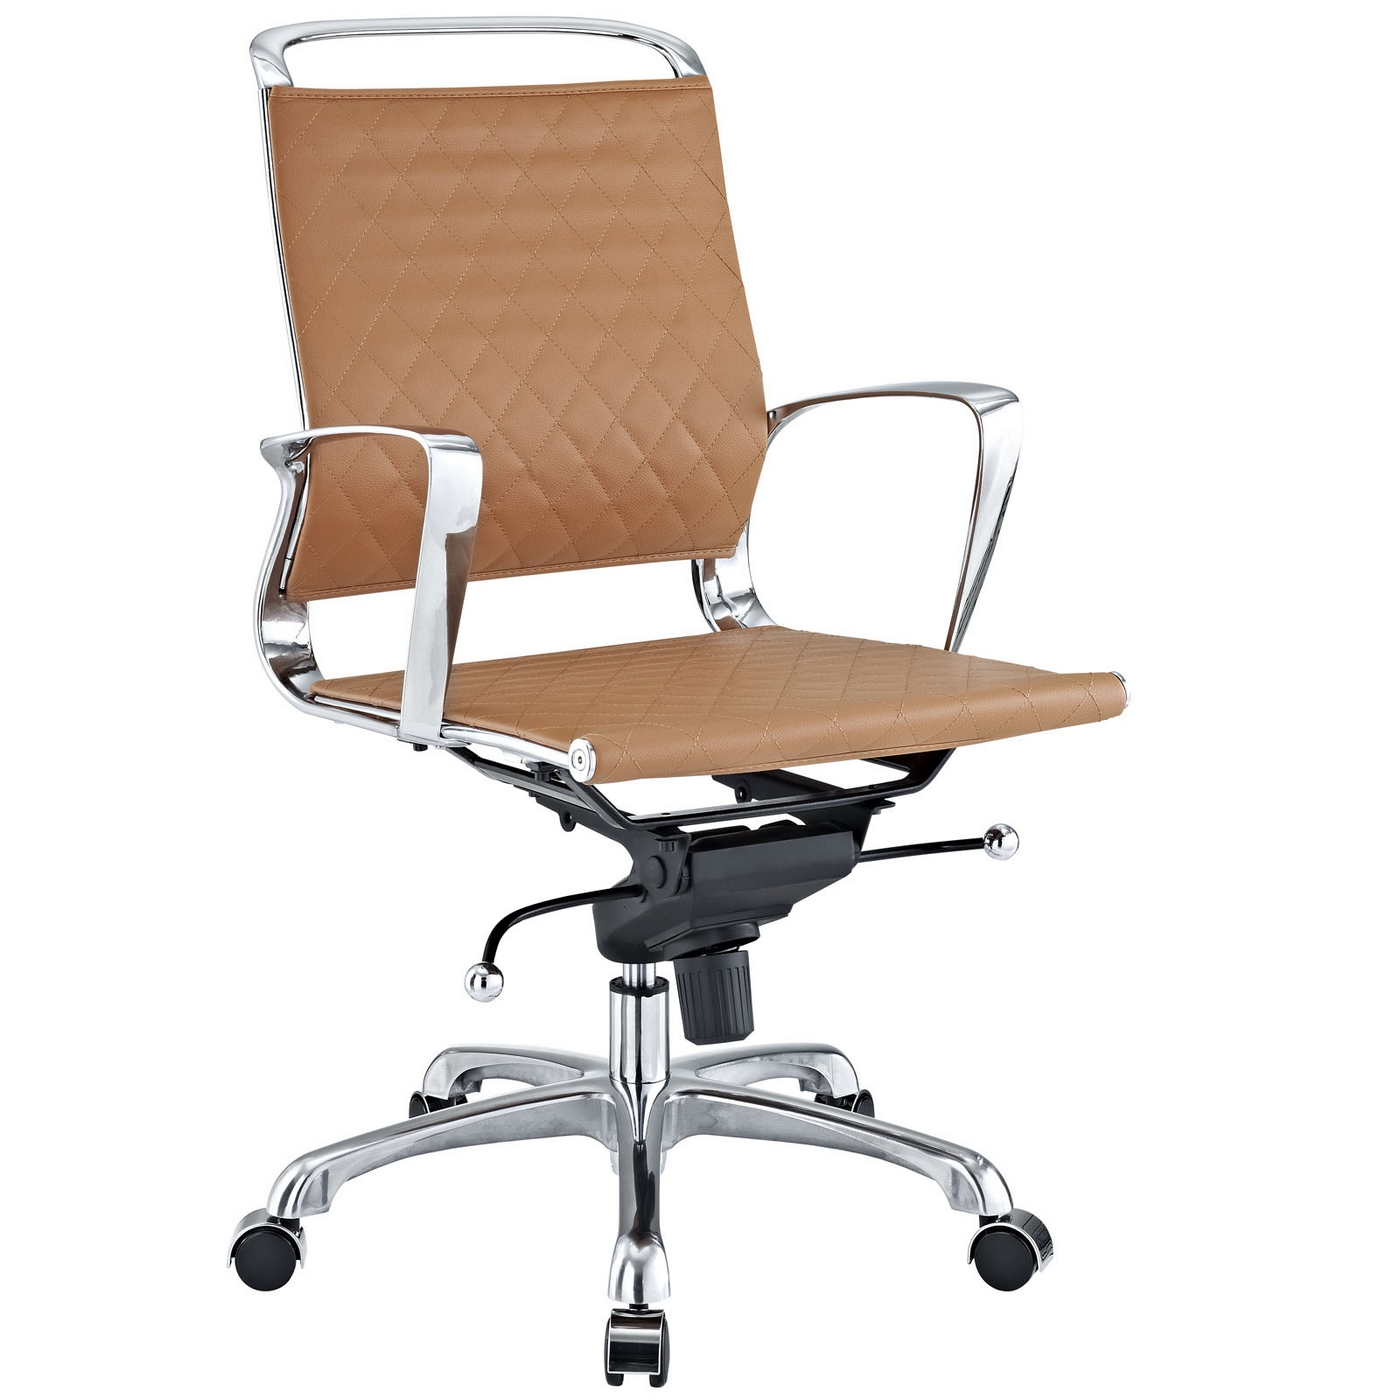 Leather Office Chairs Vibe Modern Mid Back Leather Office Chair With Chrome